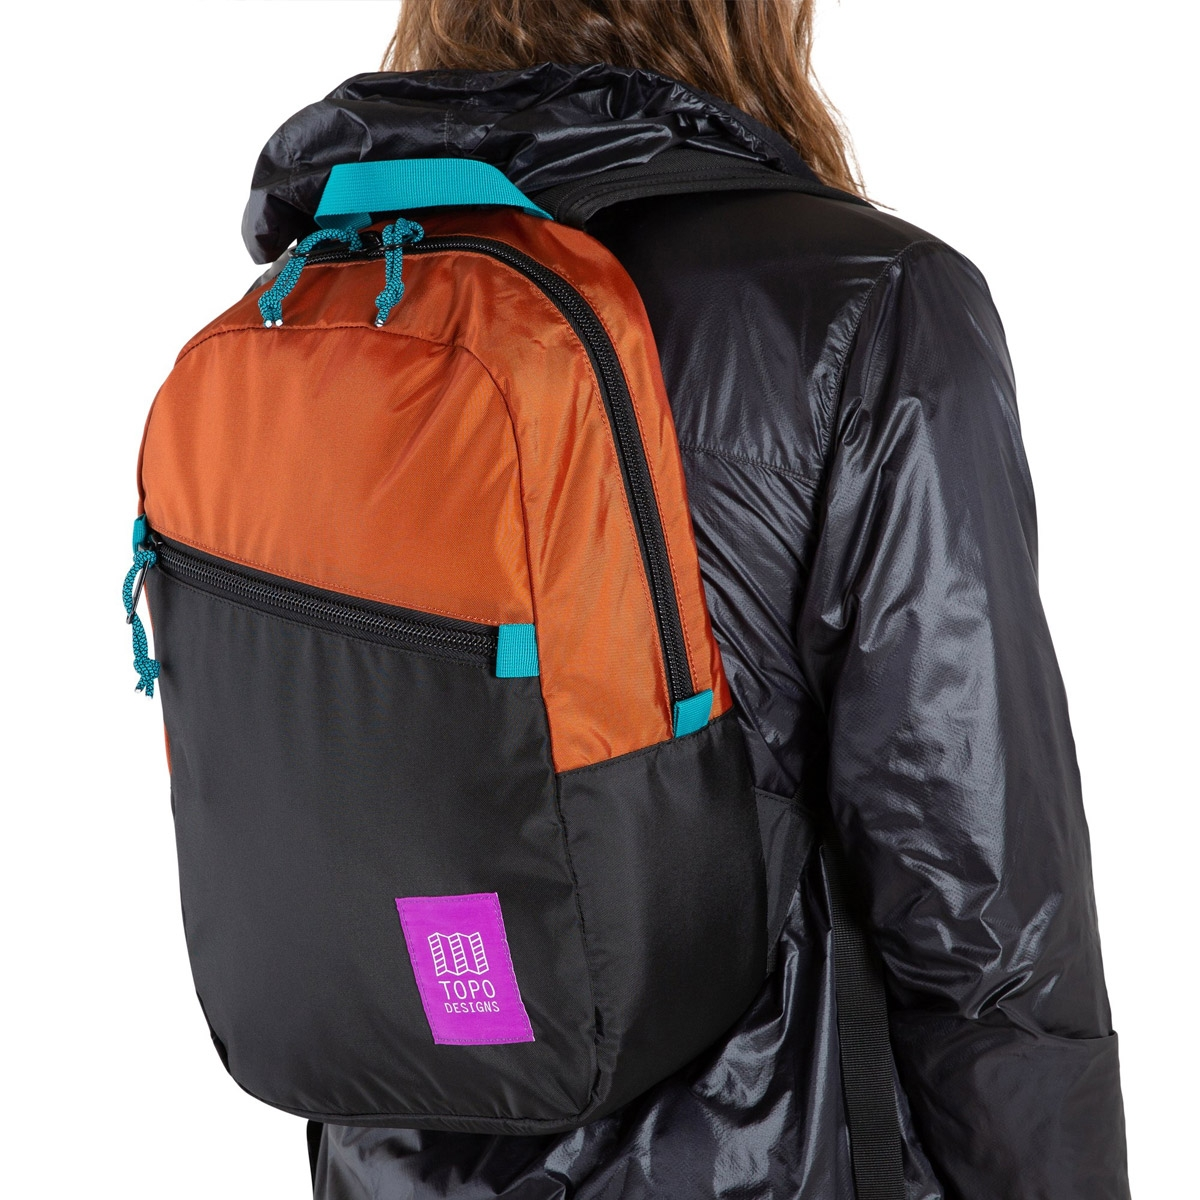 Topo Designs Light Pack Clay/Black, lightweight carry-all bag, also perfect pack for hiking